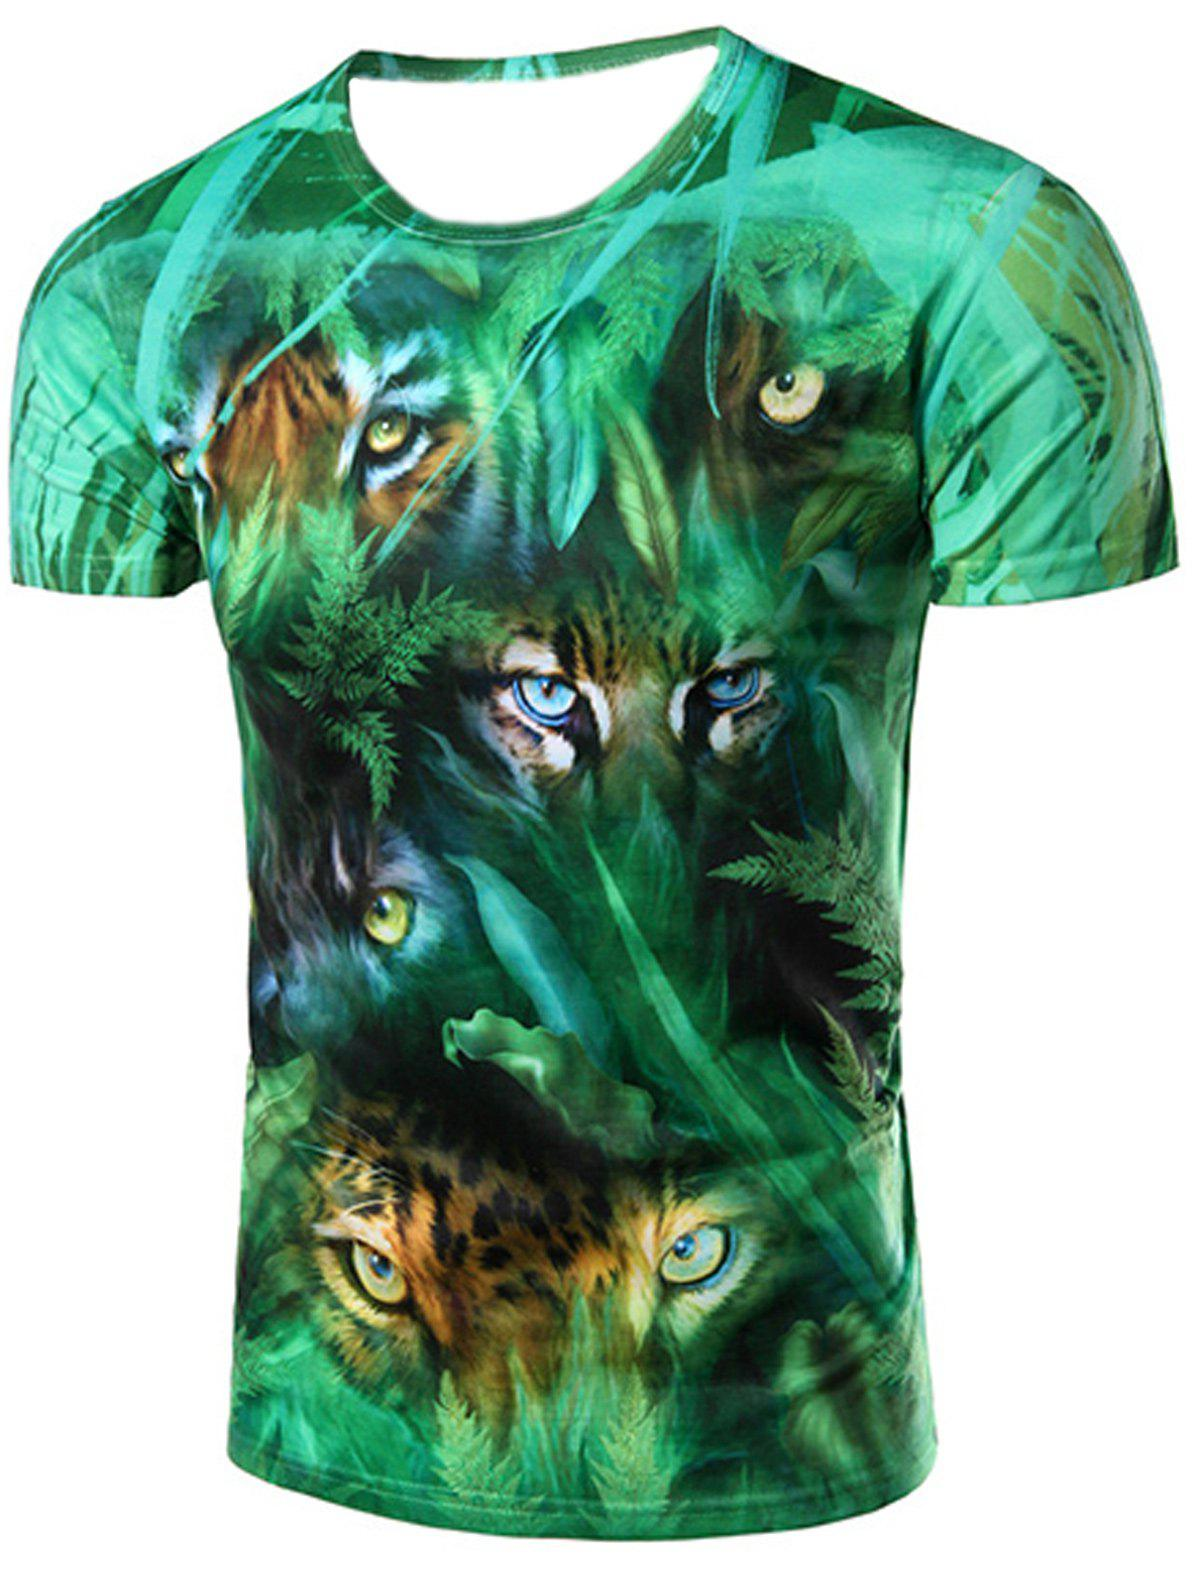 Round Neck 3D Jungle and Leopard Printed Short Sleeve Men's T-Shirt guess printed hard guhcp6juf jungle